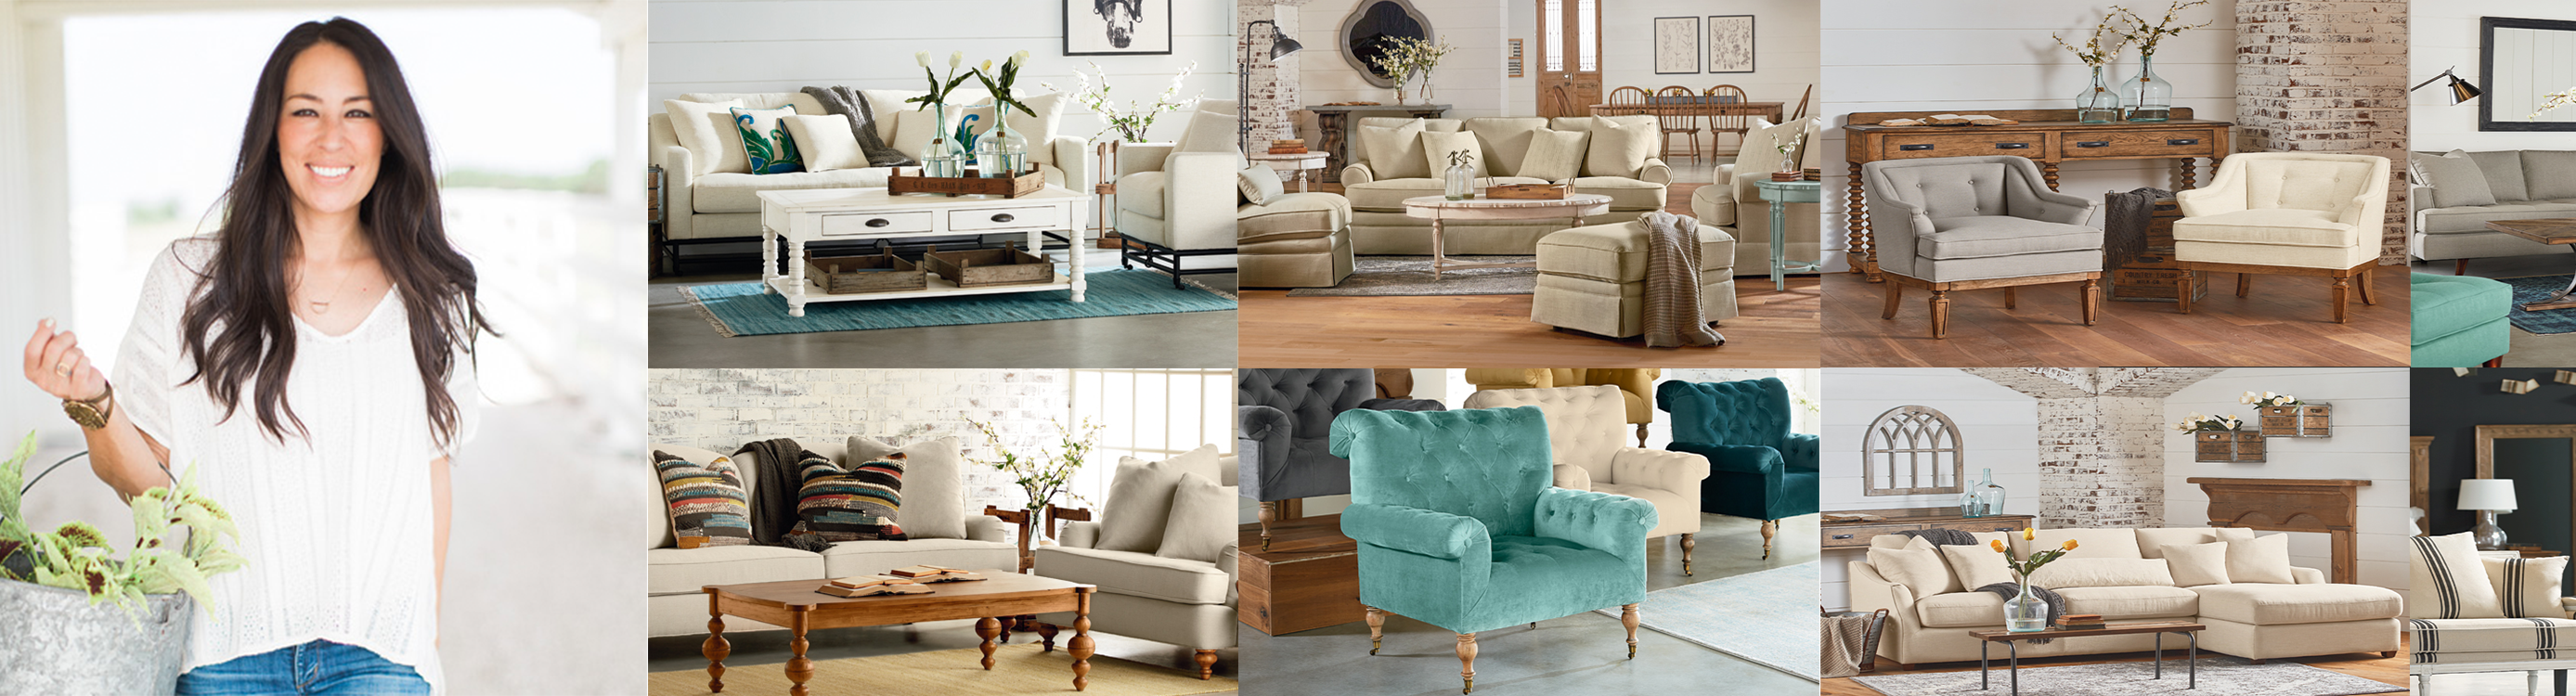 Magnolia Home Preview Upholstered Living Room Collection